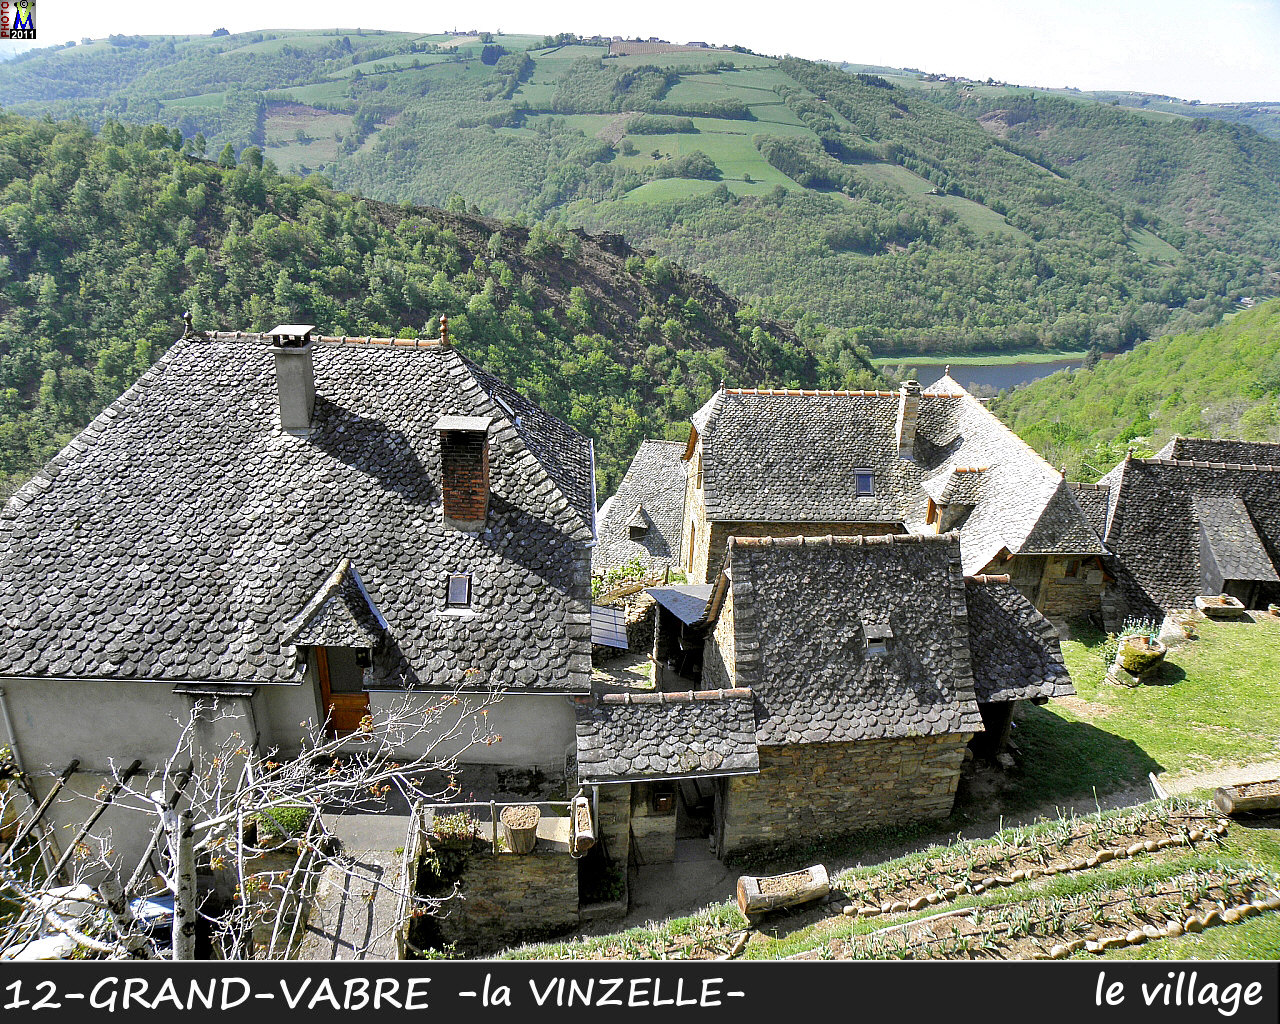 12GRAND-VABRE-Vinzelle_village_142.jpg